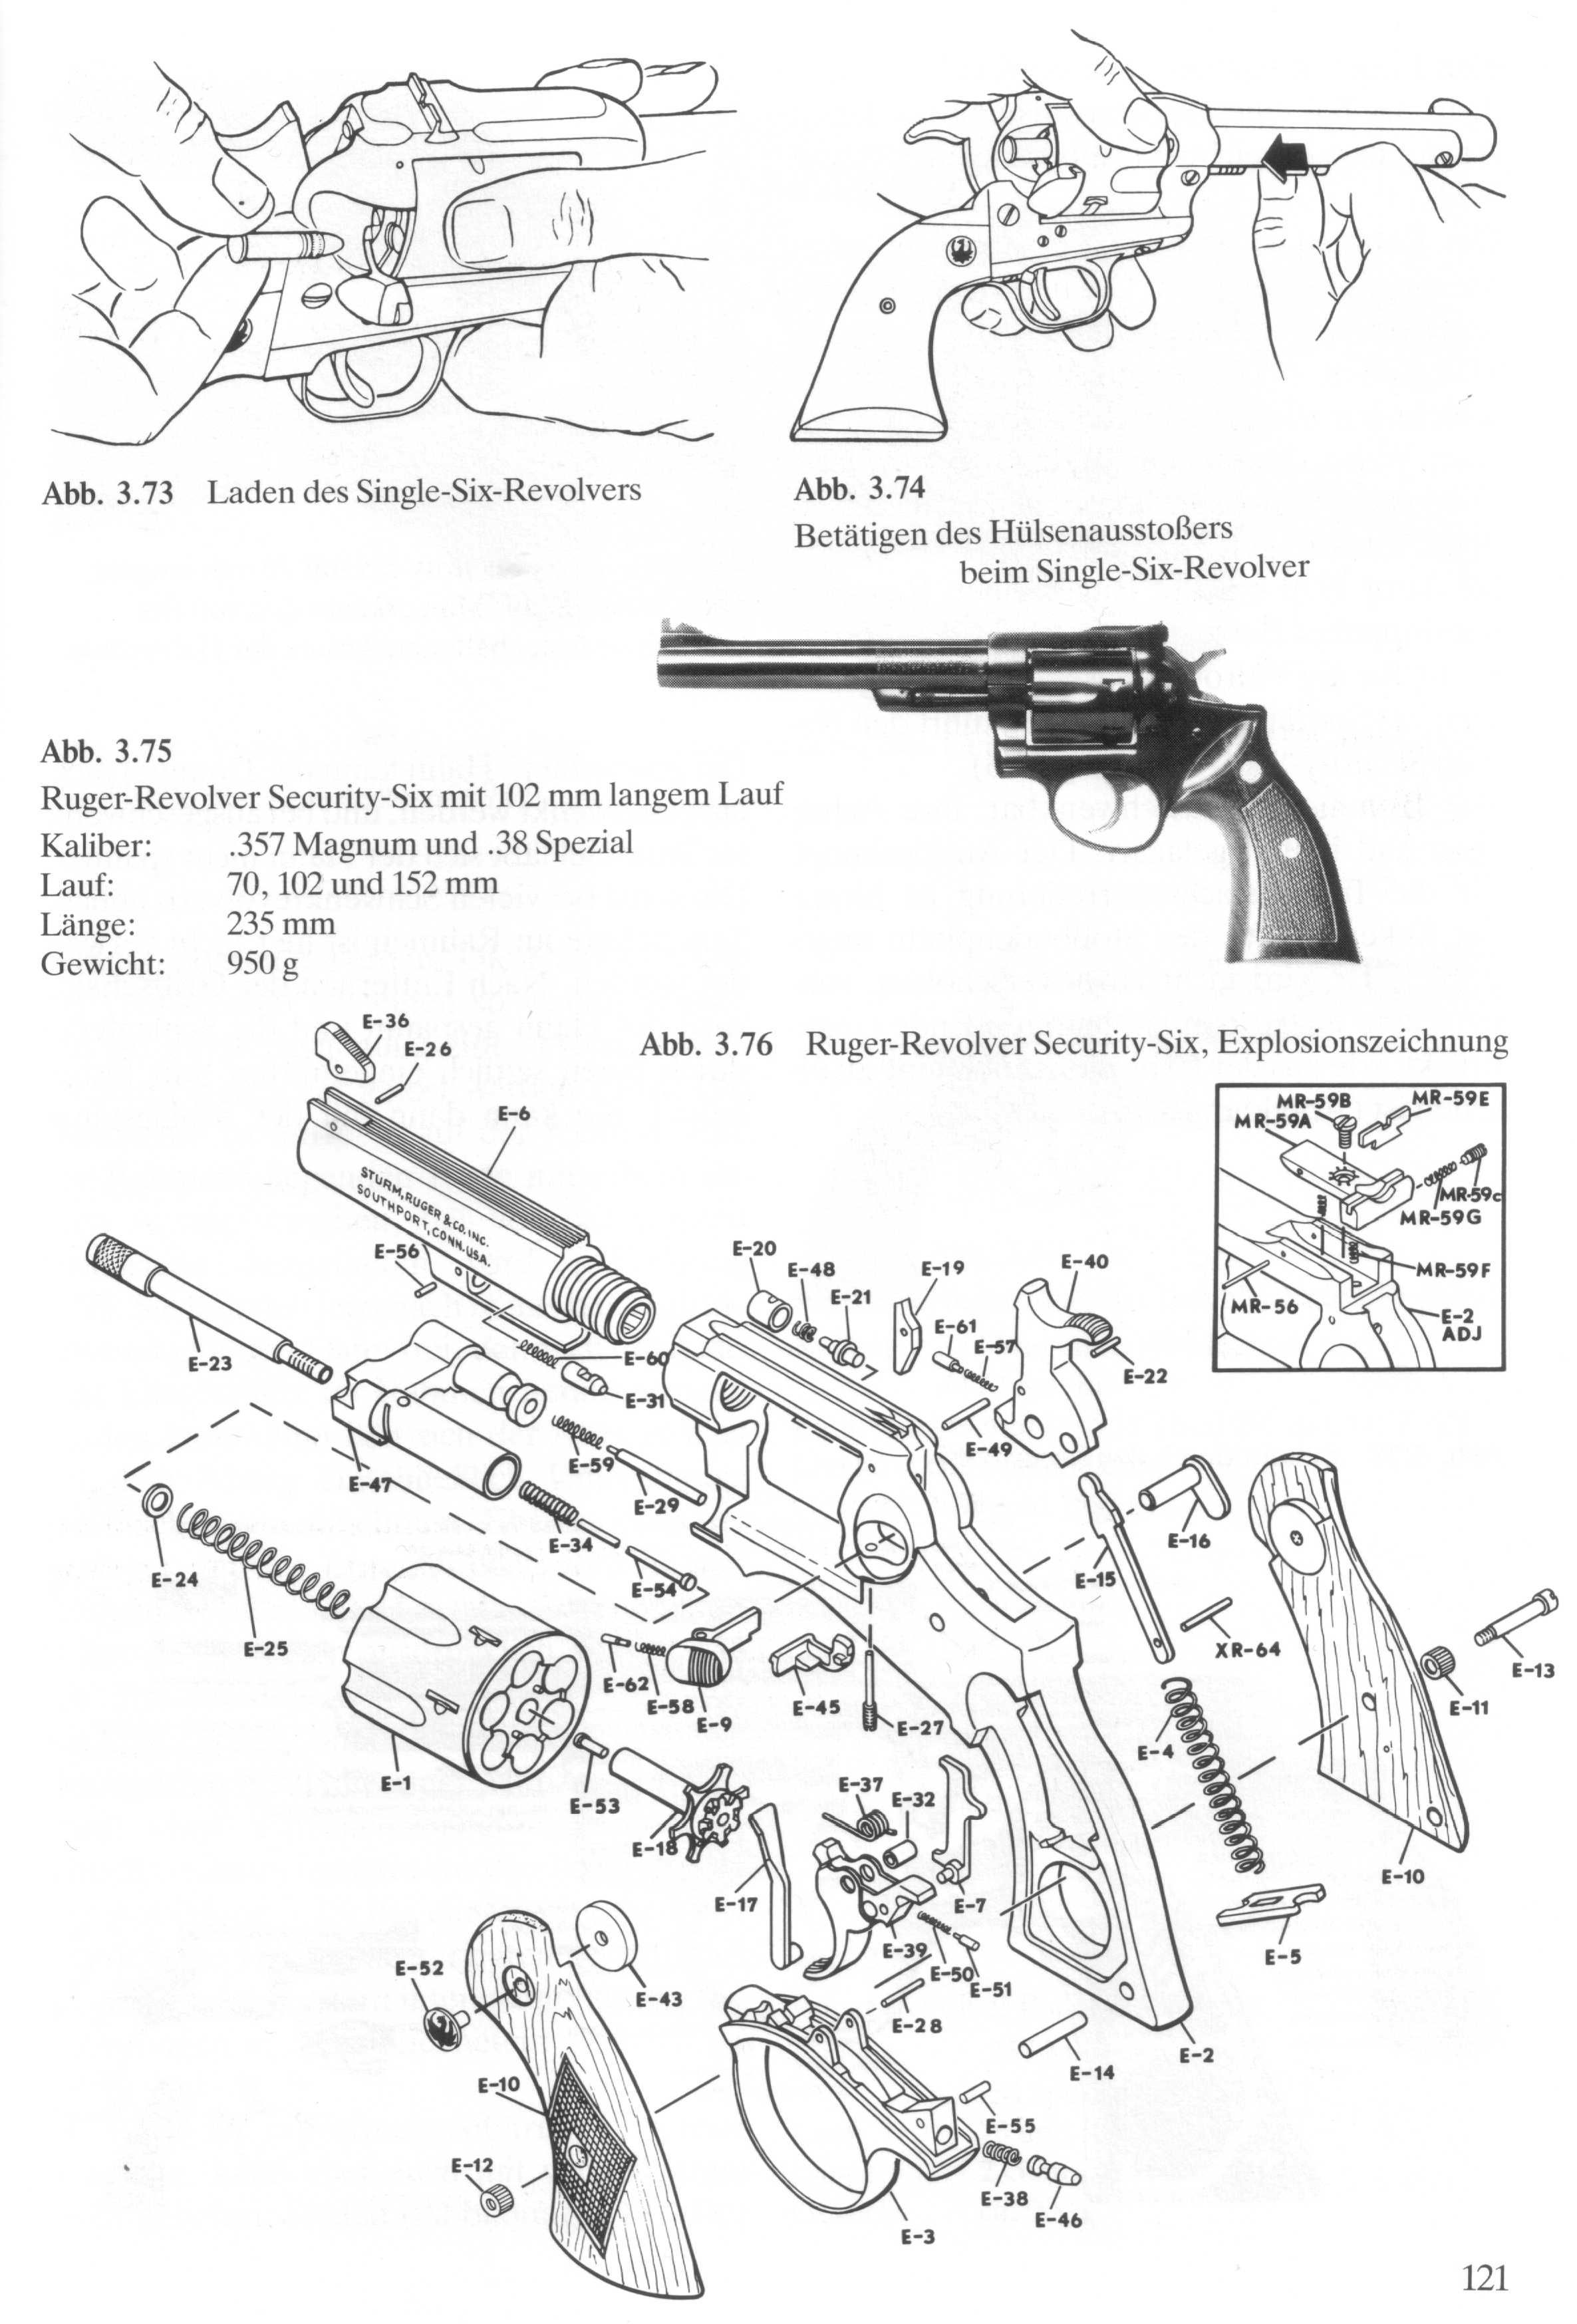 Pin By Toppreps On Firearms And Survival